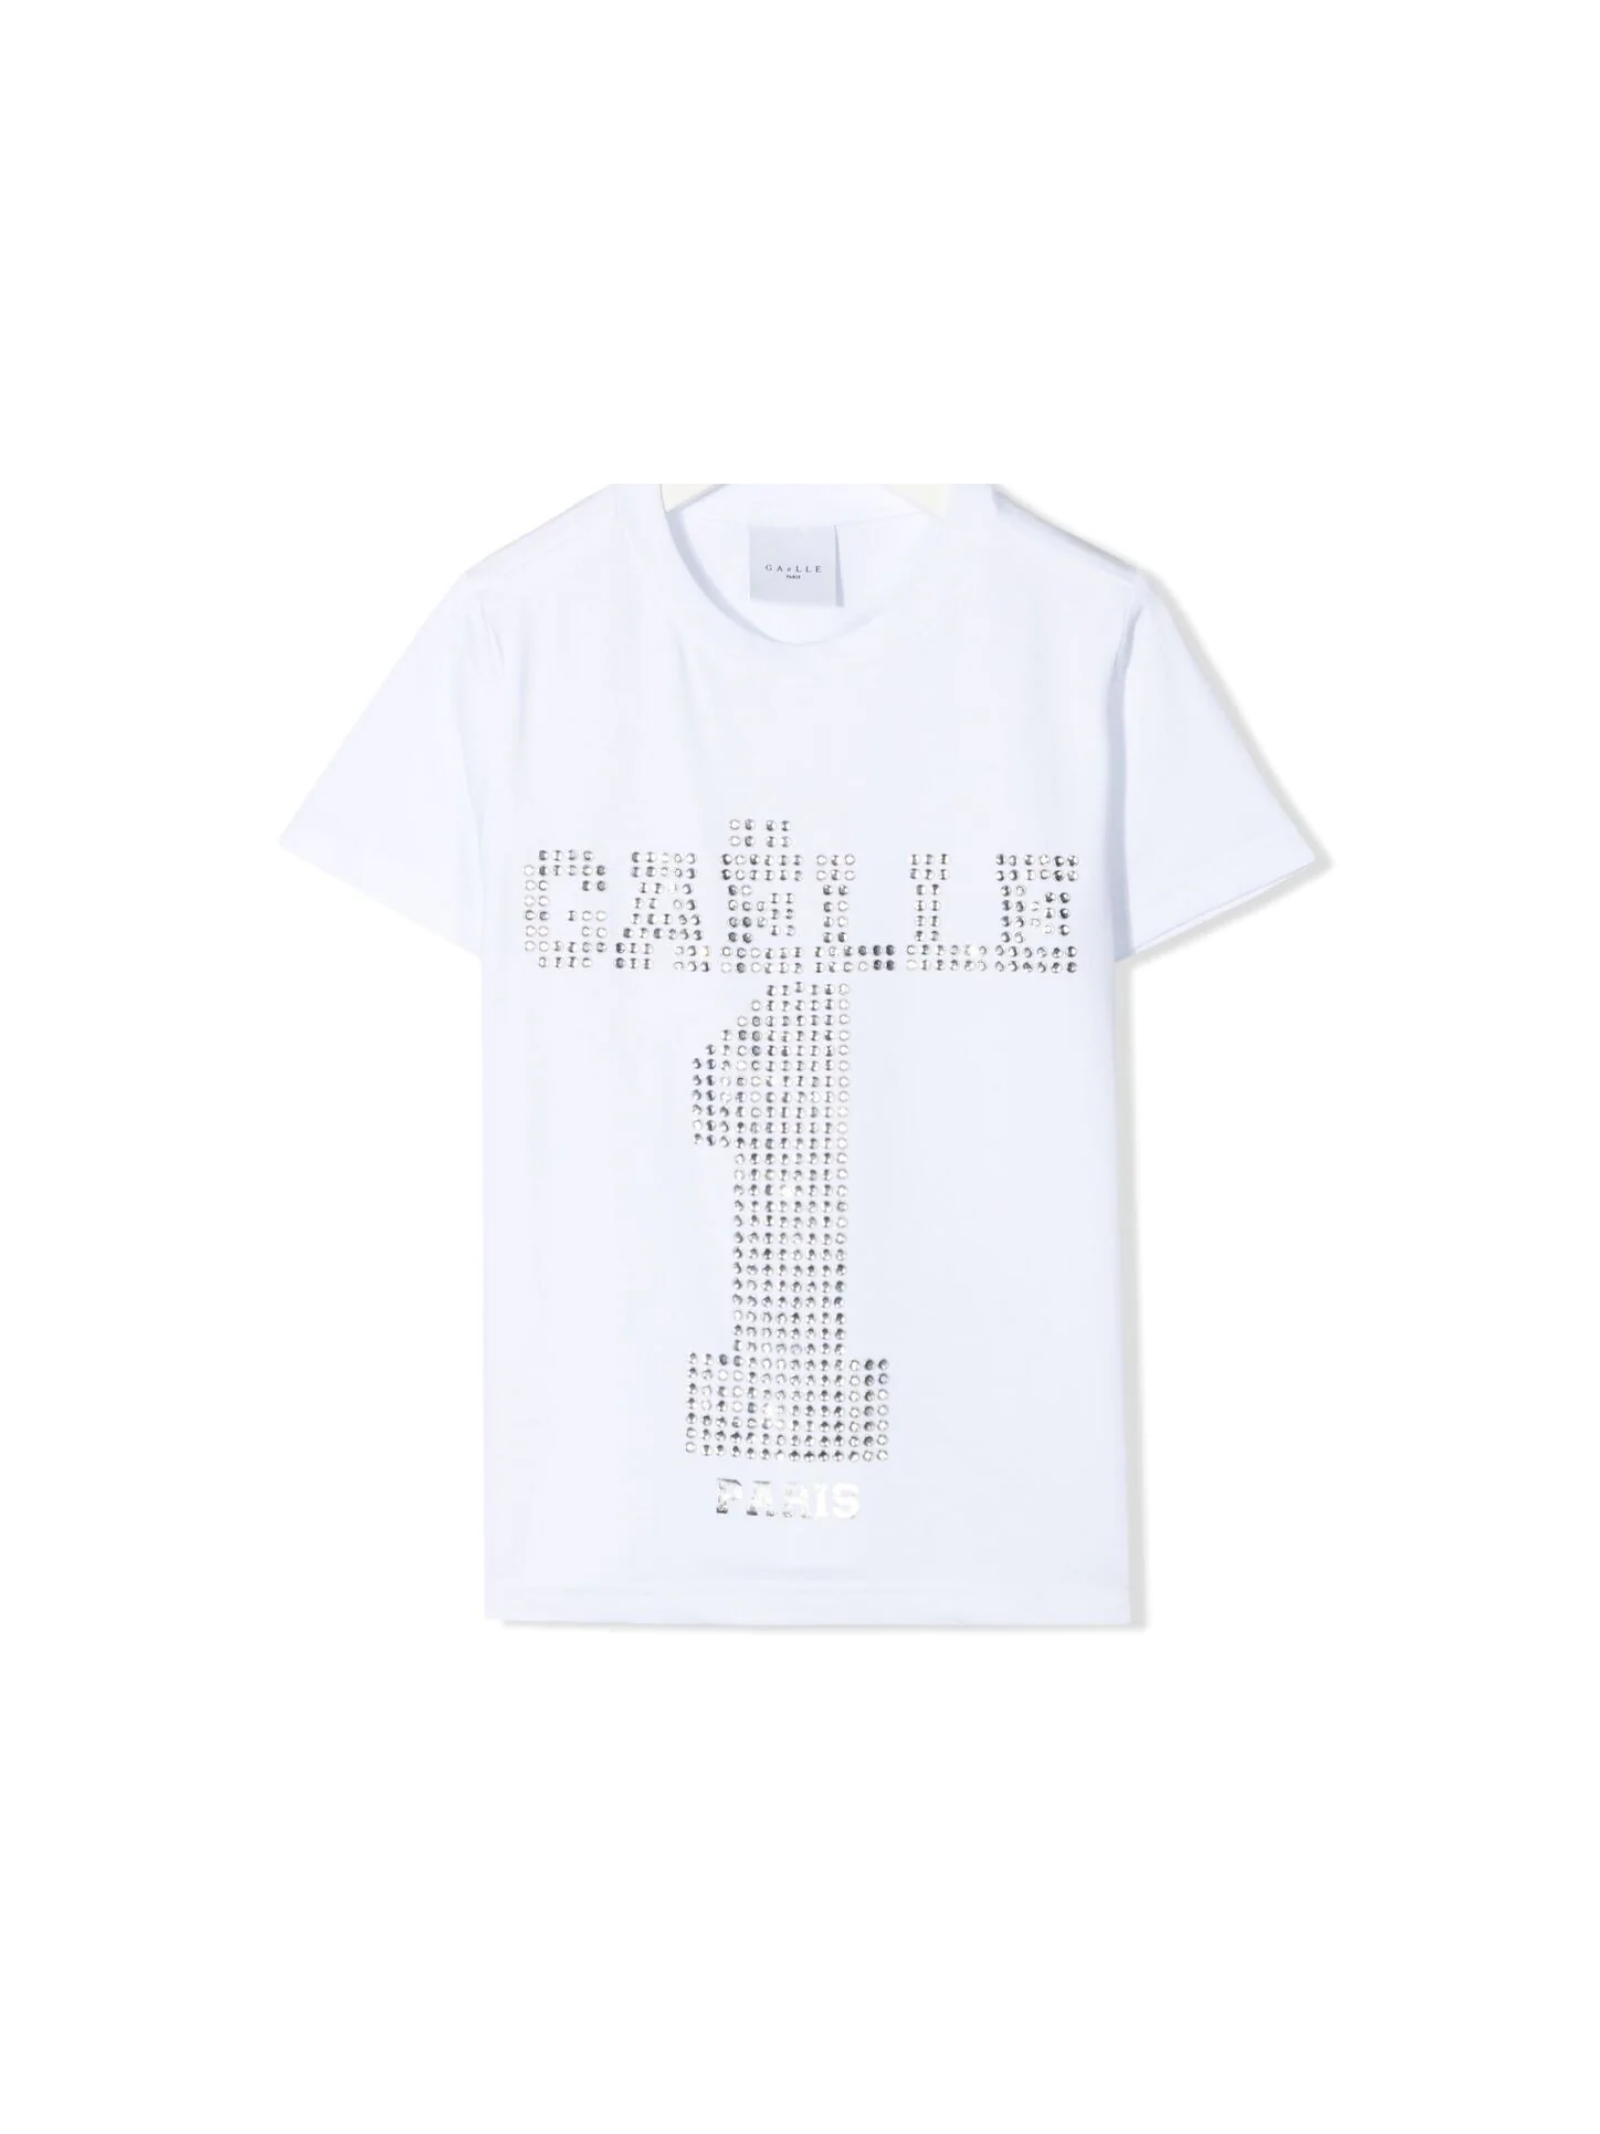 T-shirt Swarovki One Bambina GAËLLE PARIS KIDS | T-shirt | 2746M0382WHITE